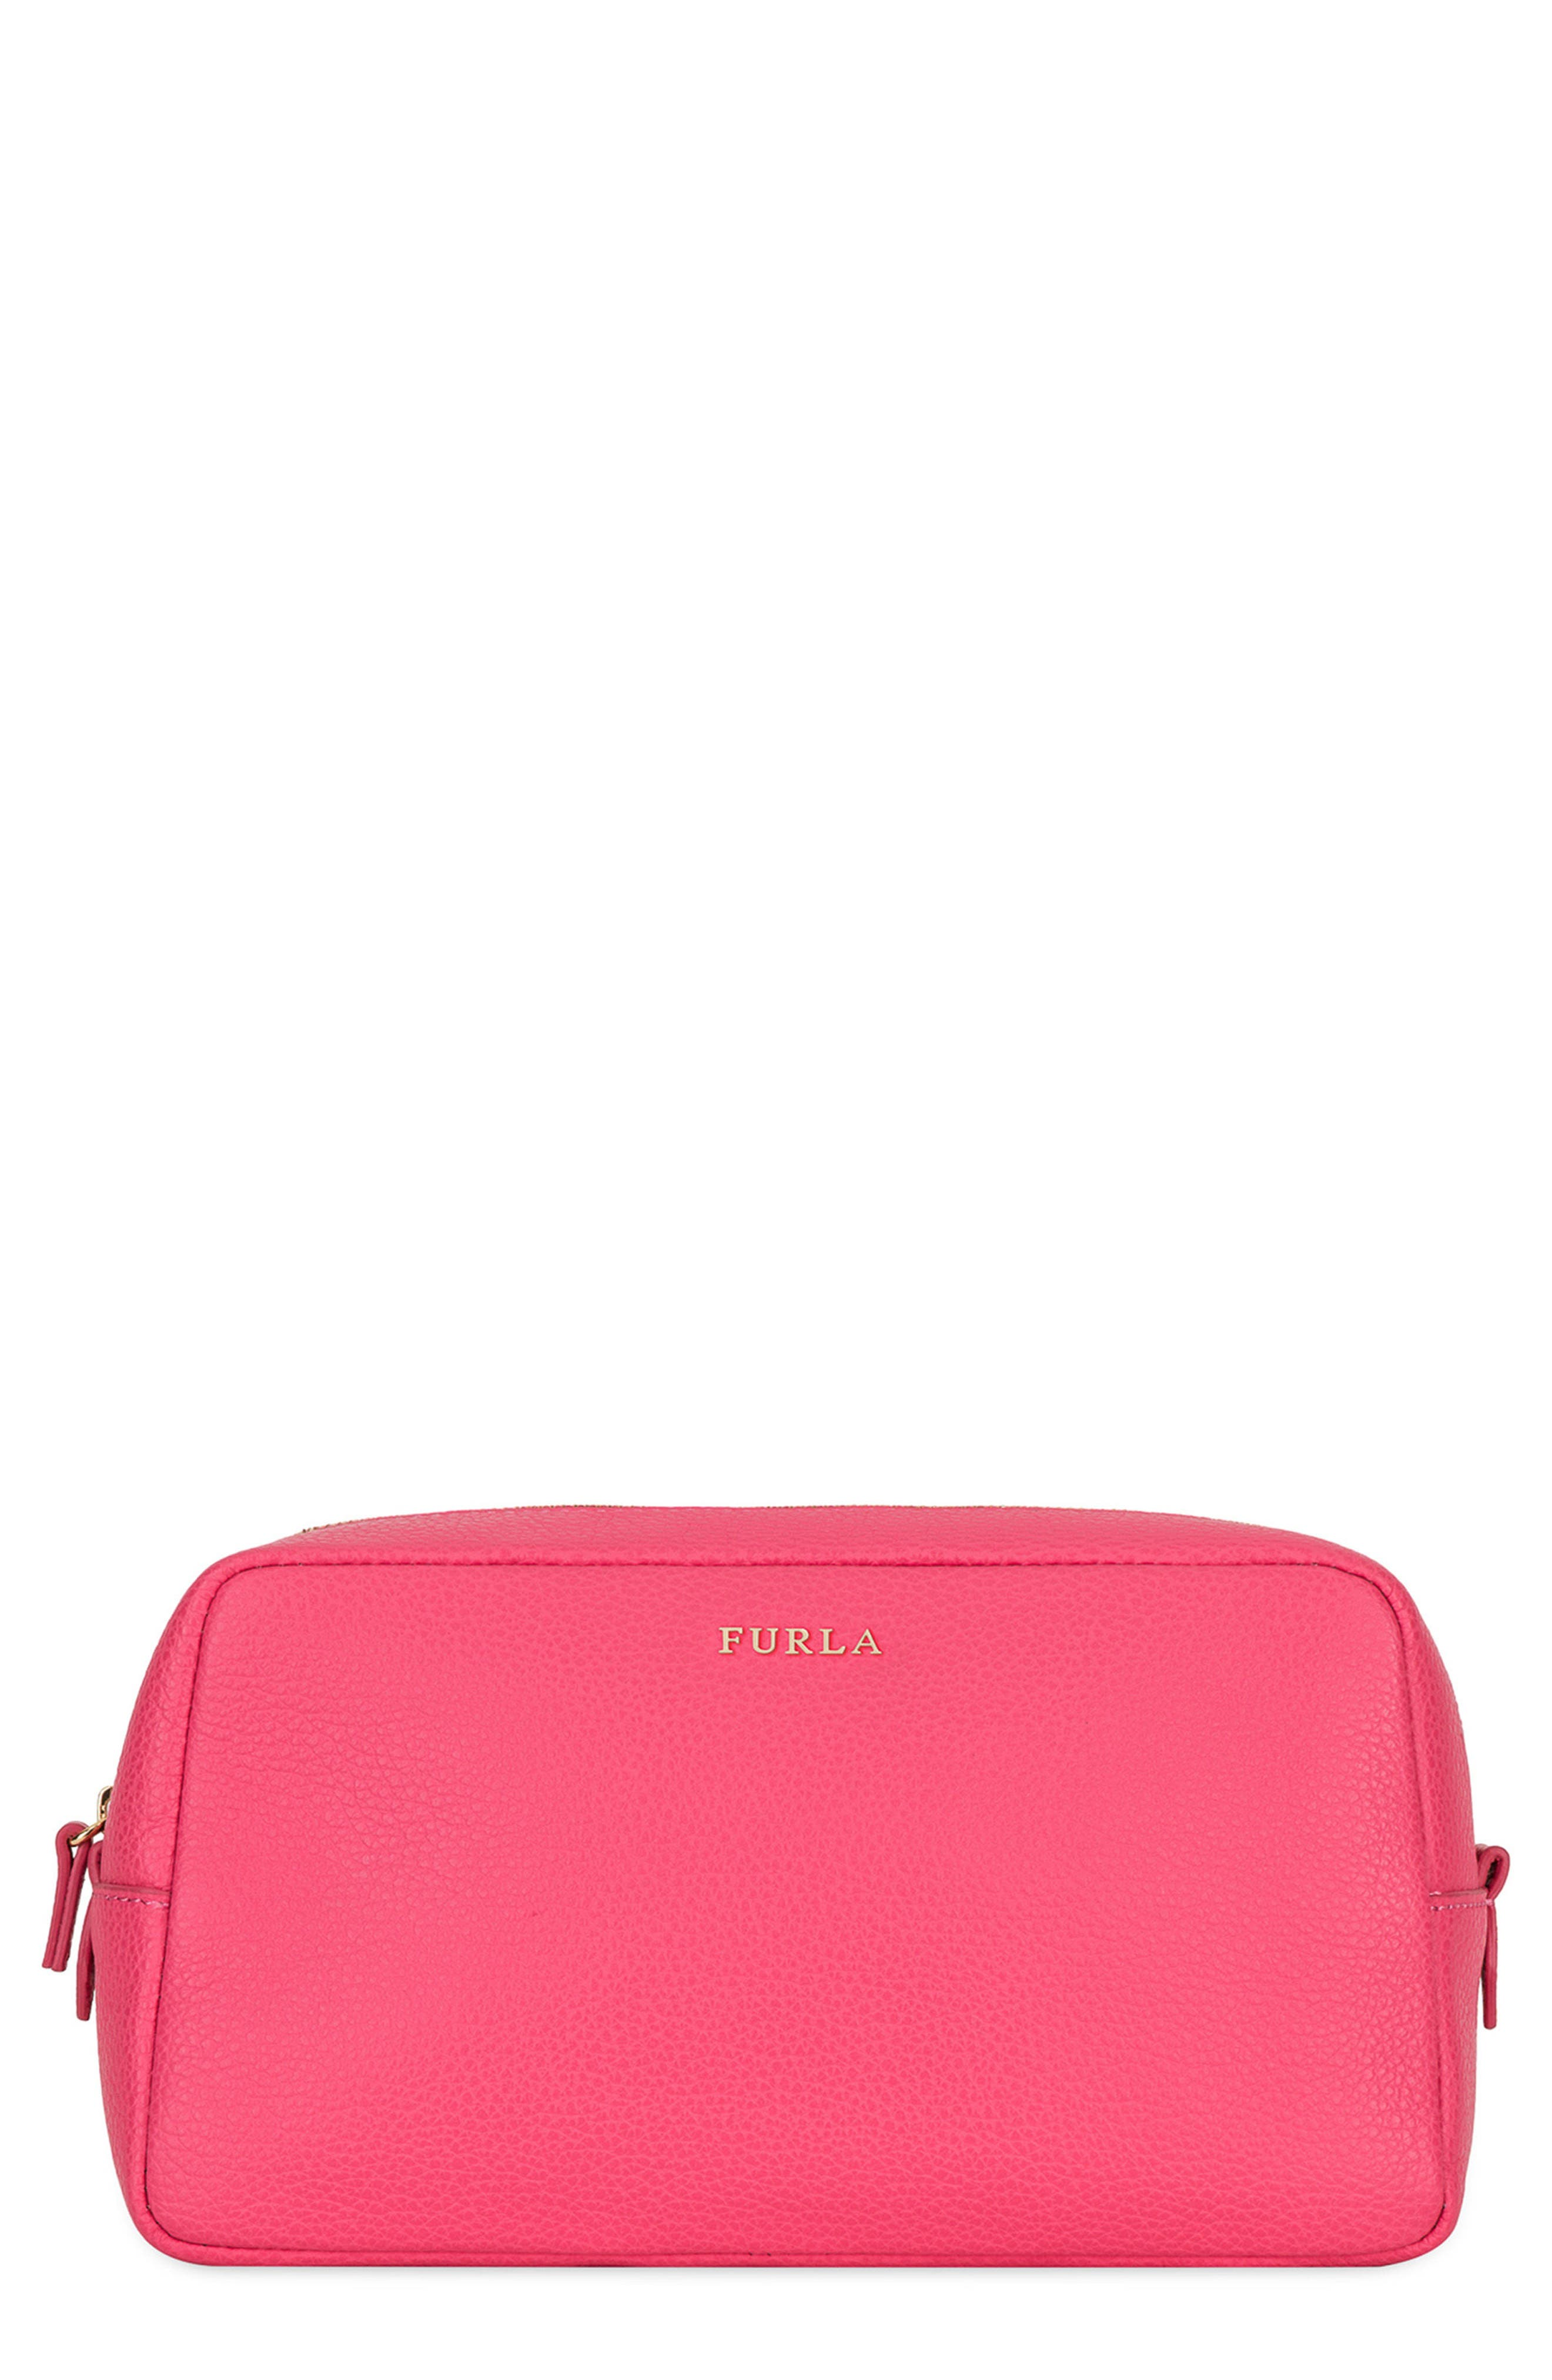 Main Image - Furla Bloom Extra Large Leather Cosmetic Case